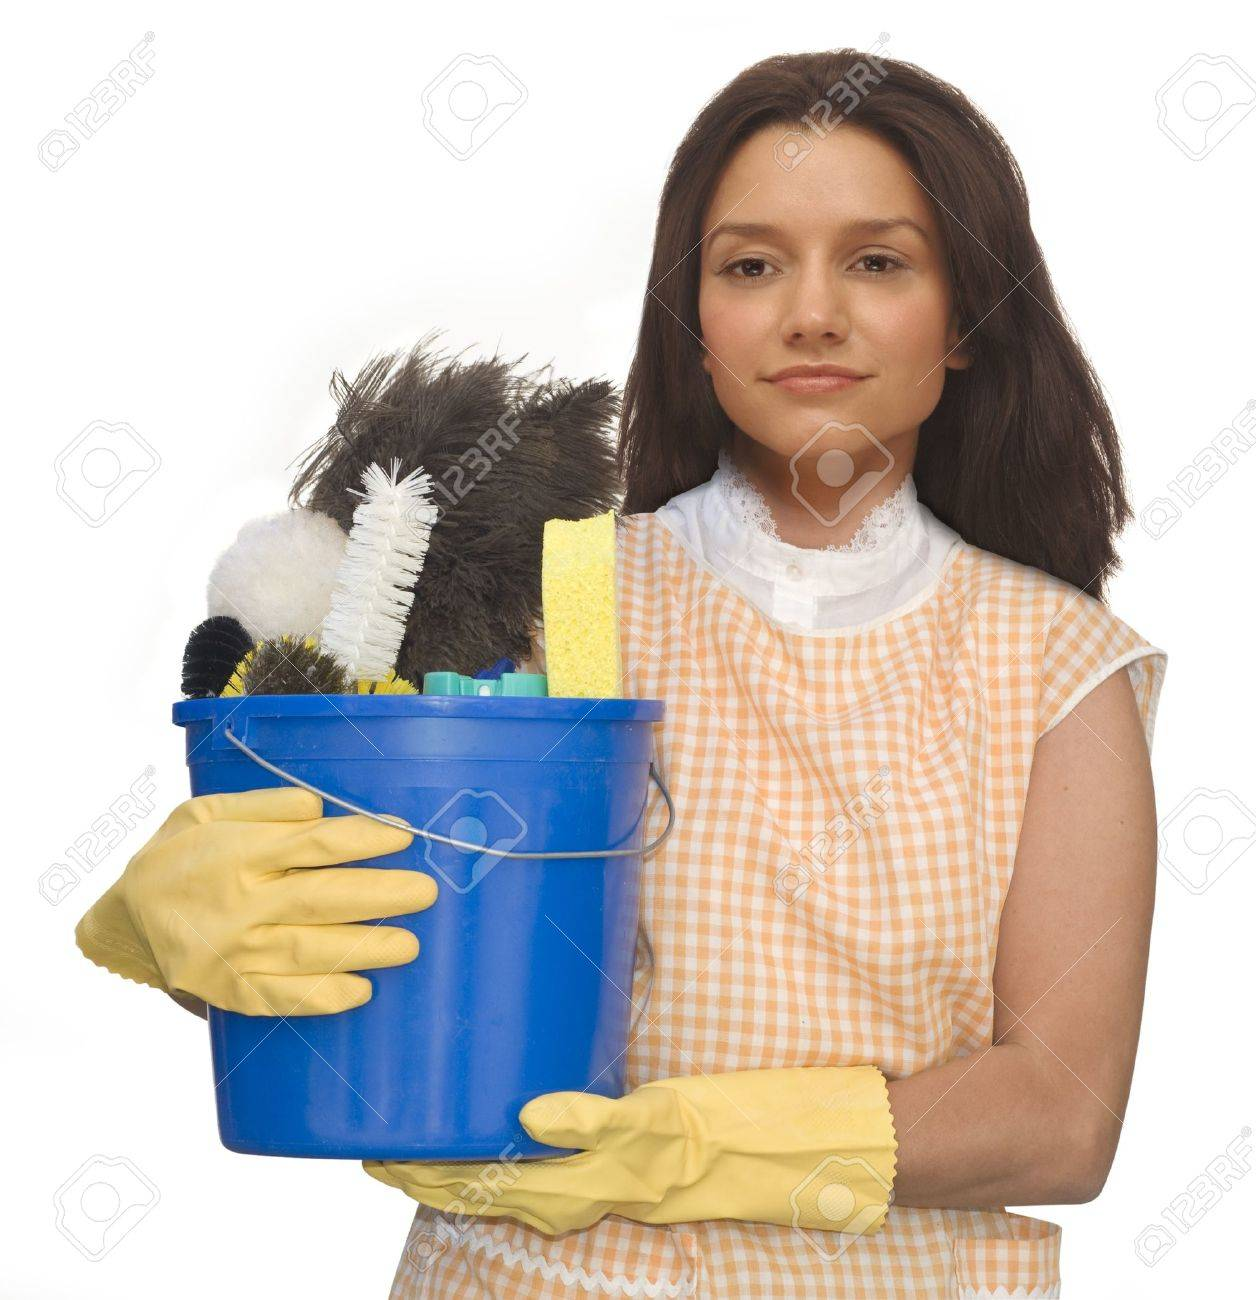 White rubber apron - Cleaning Lady Wearing Rubber Gloves And An Apron Holding A Bucket Of Cleaning Supplies On A